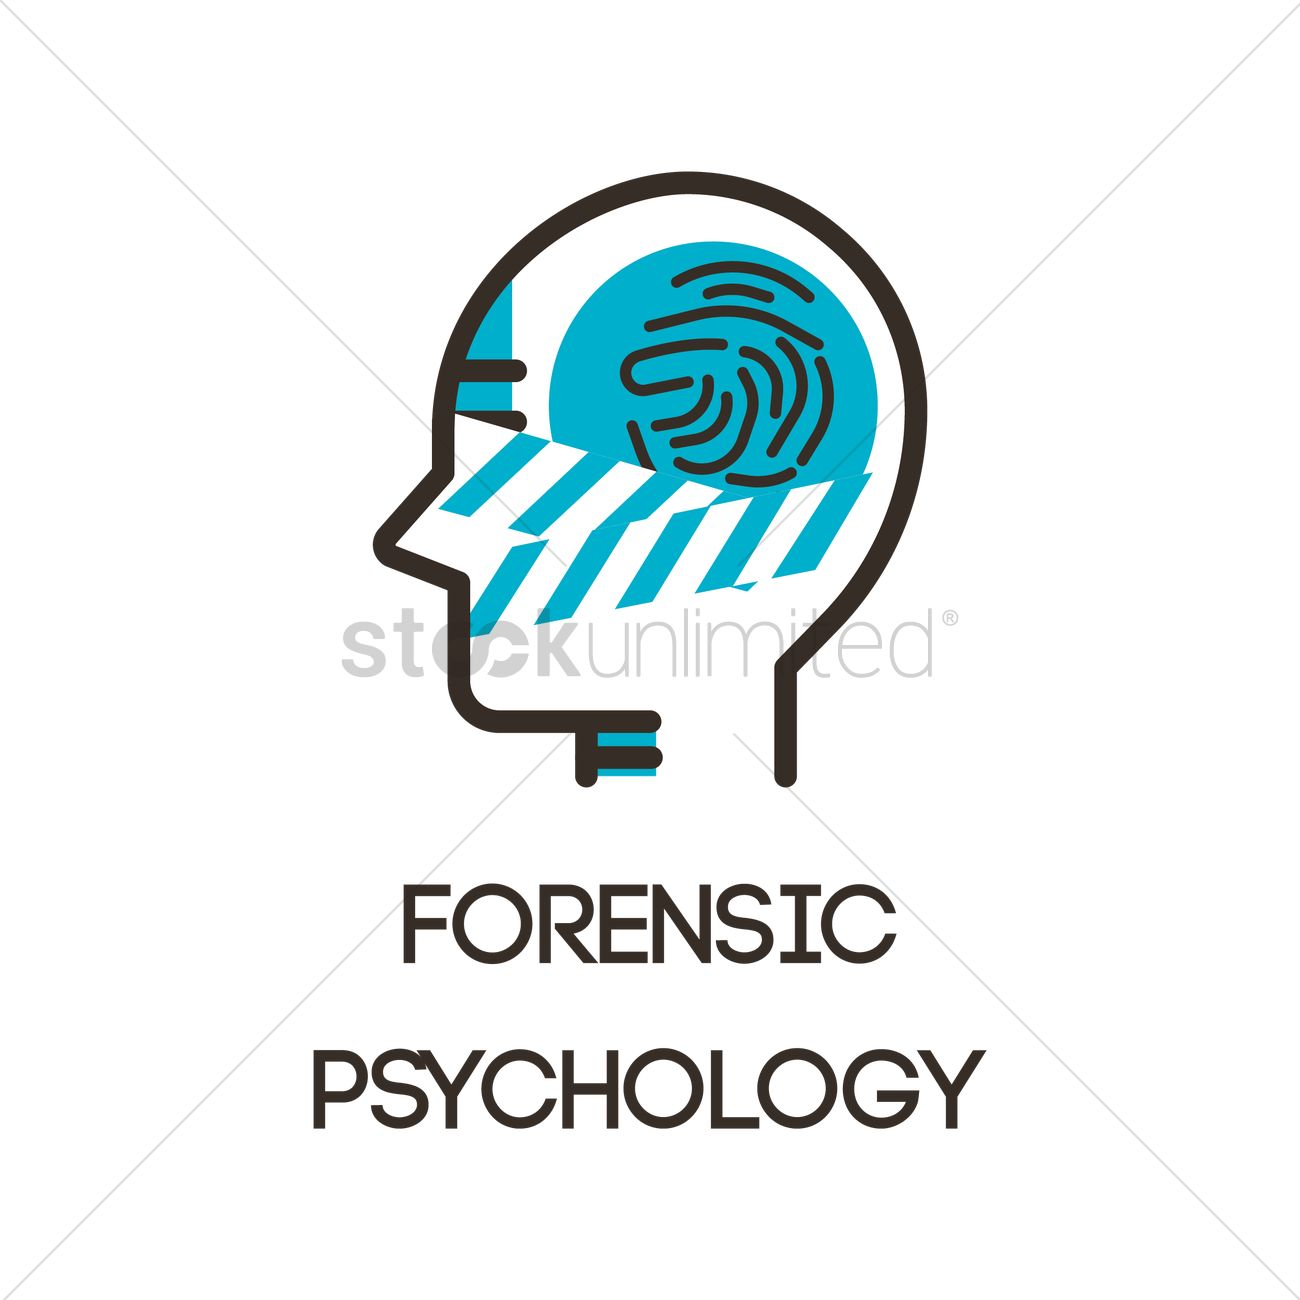 Forensic Psychology Icon Vector Image 2023228 Stockunlimited